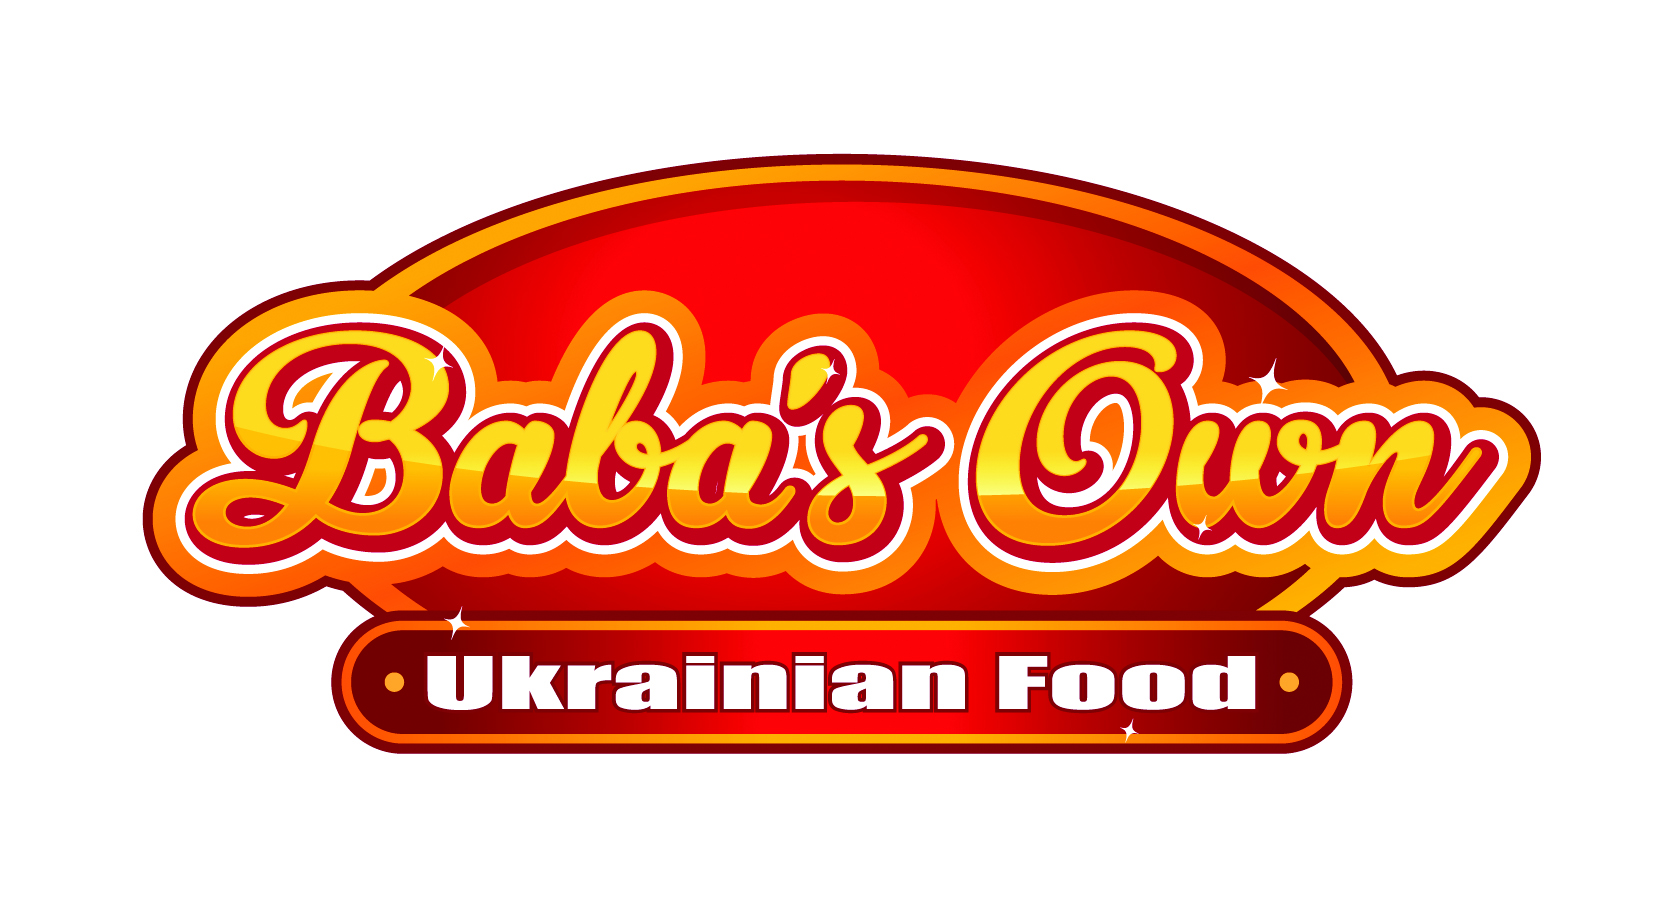 Friends of Rotary - Baba's Own Ukrainian Food - Logo